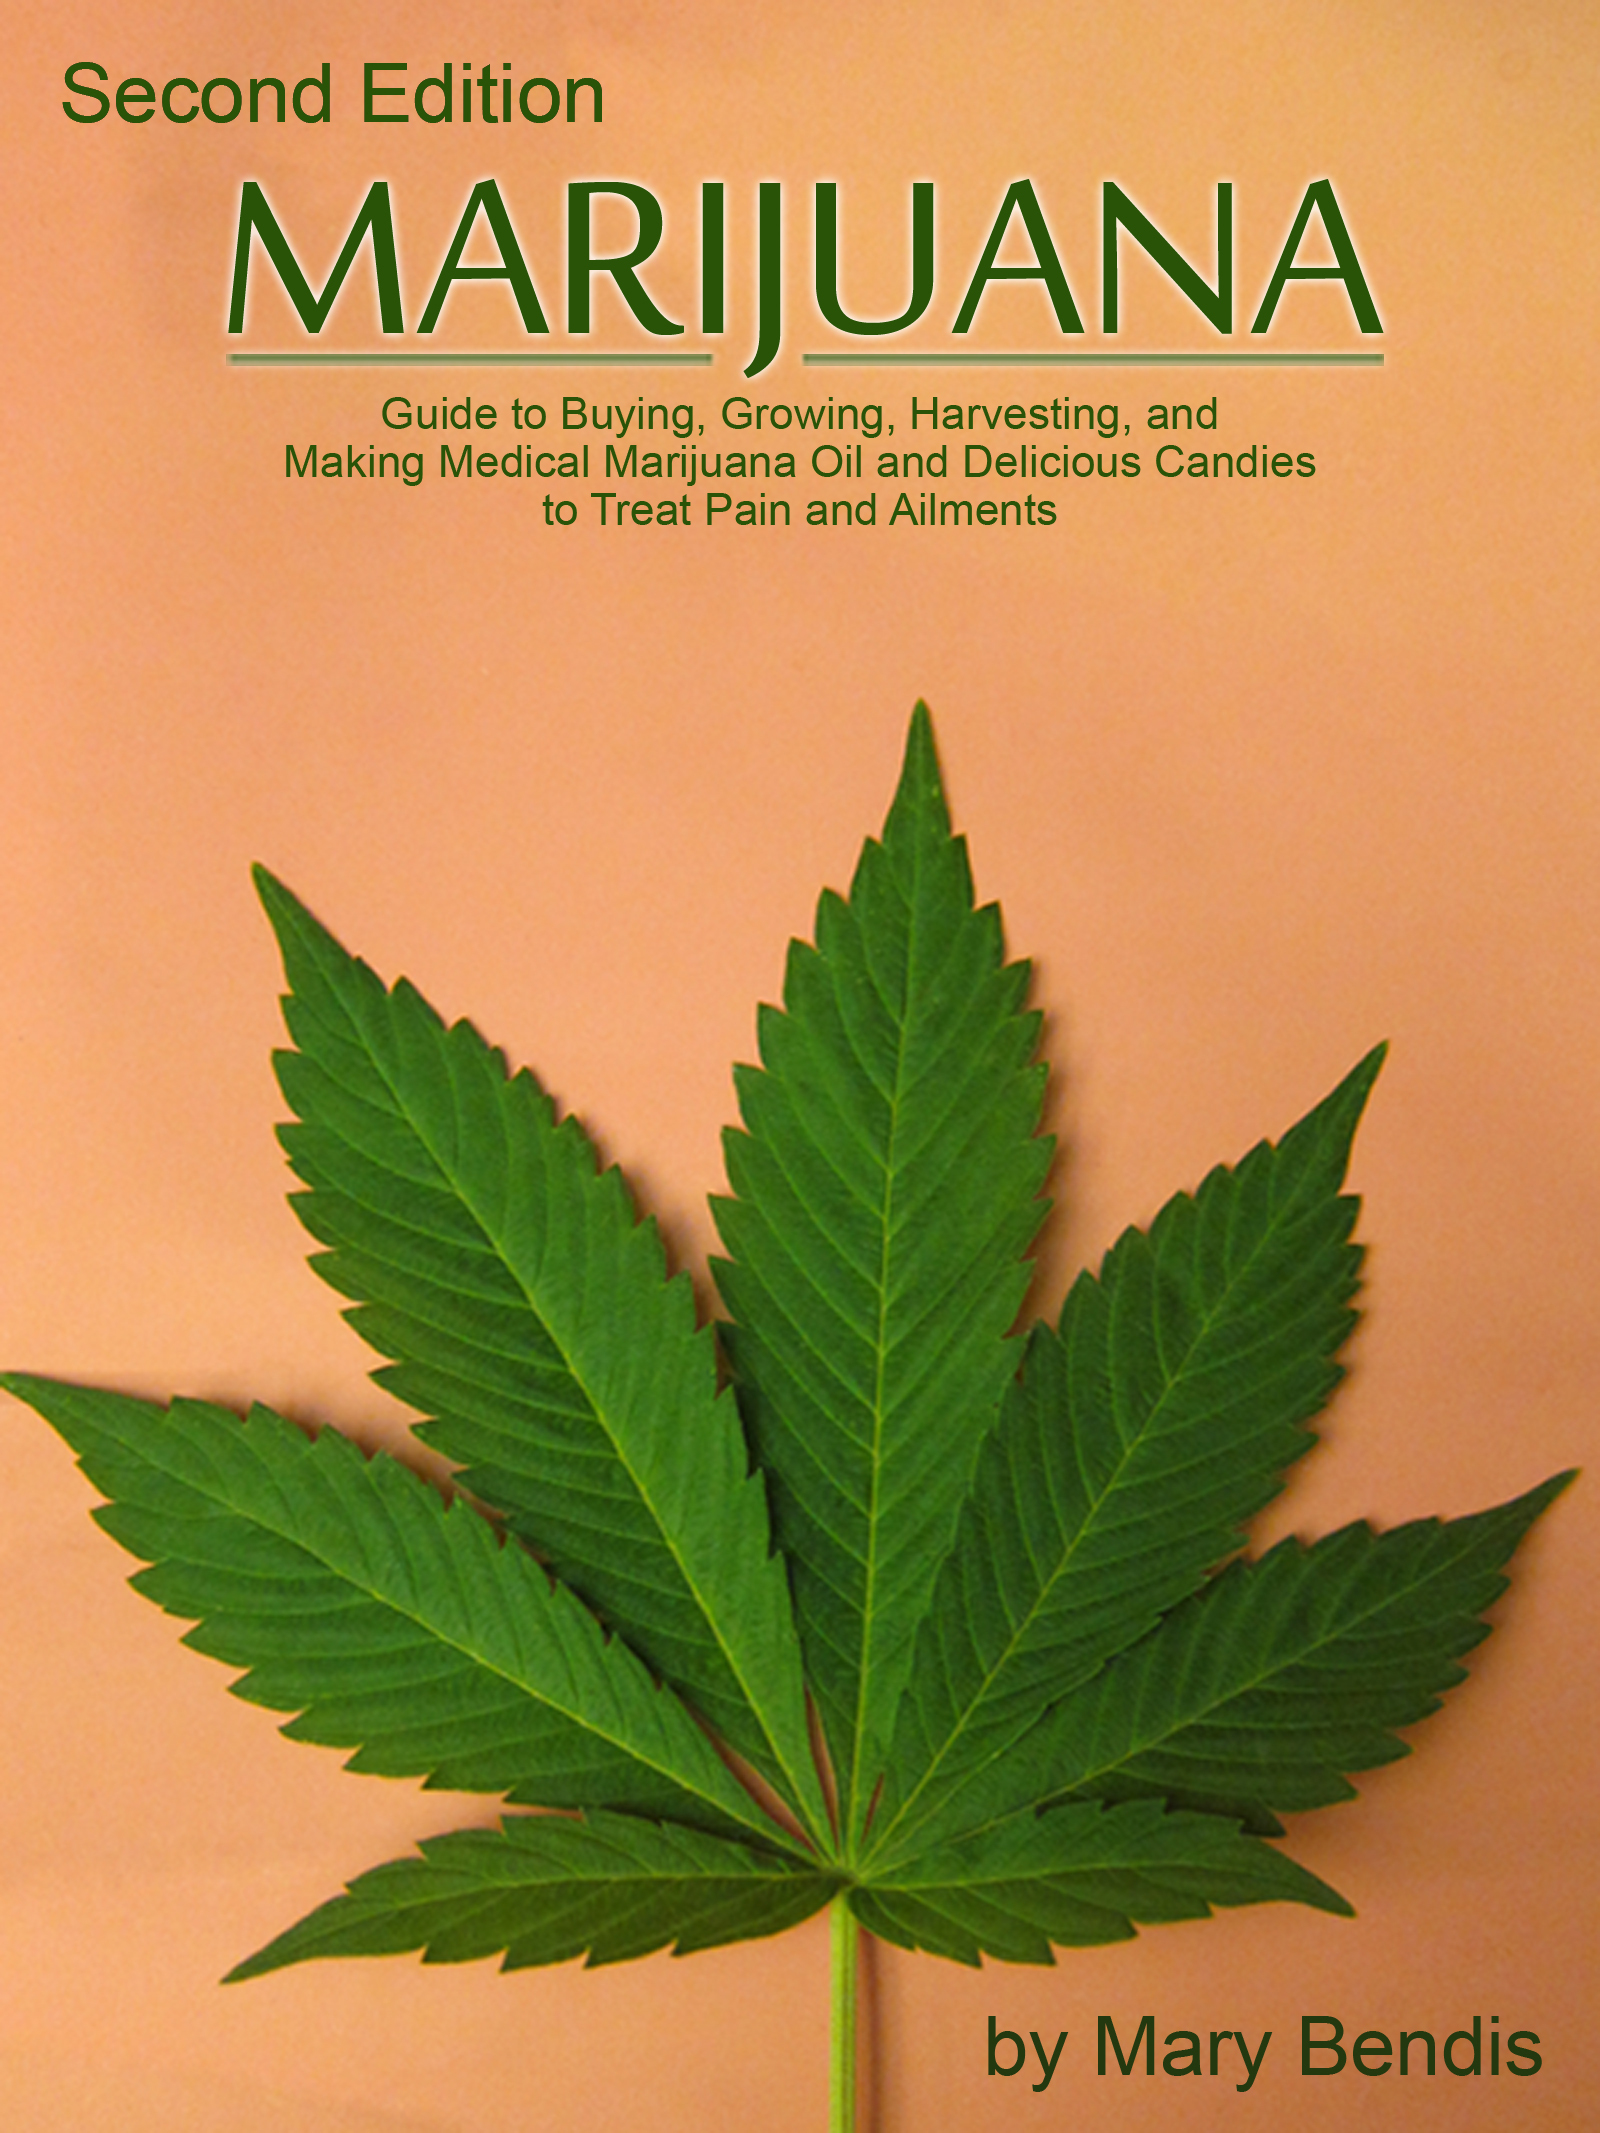 MARIJUANA: Guide to Buying, Growing, Harvesting, and Making Medical Marijuana Oil and Delicious Candies to Treat Pain and Ailments